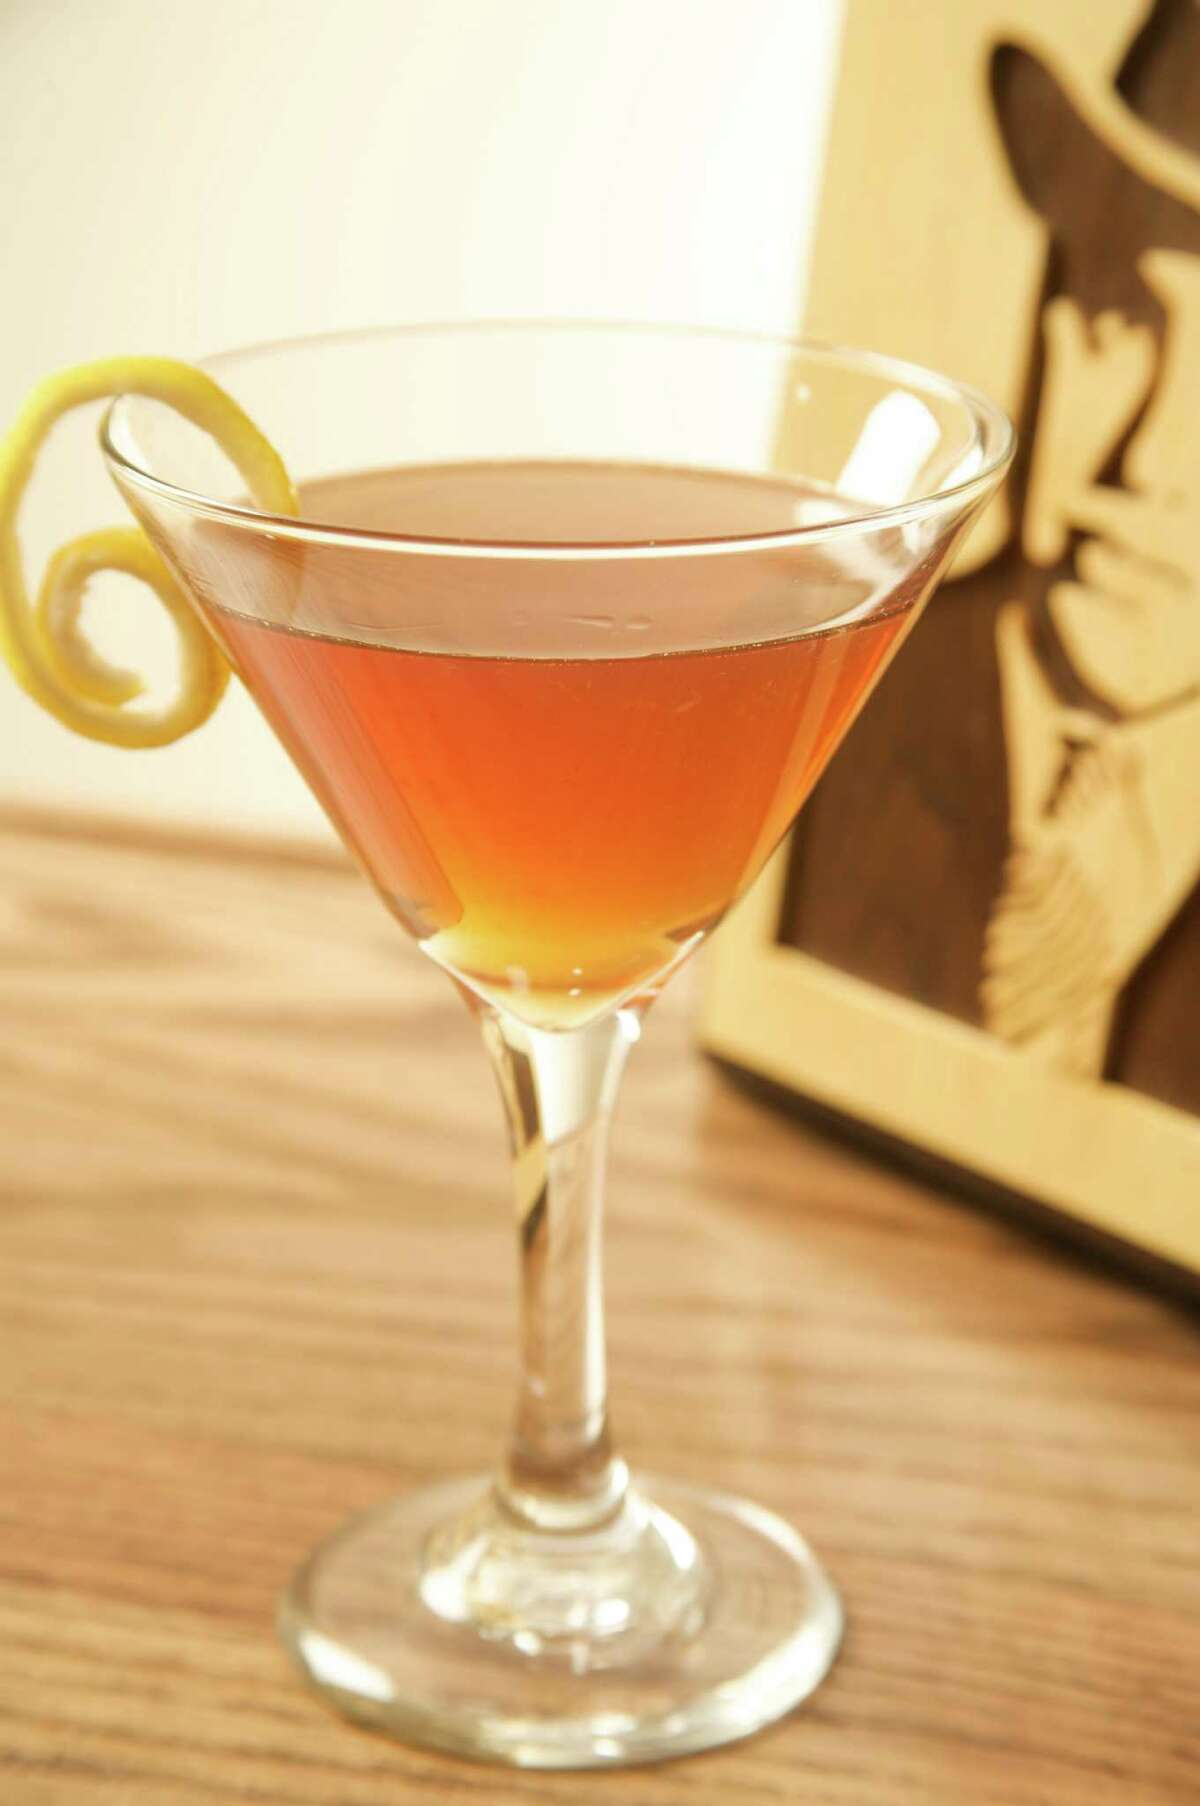 The Capone cocktail made with Templeton Rye whiskey, which is known as Al Capone's whiskey.